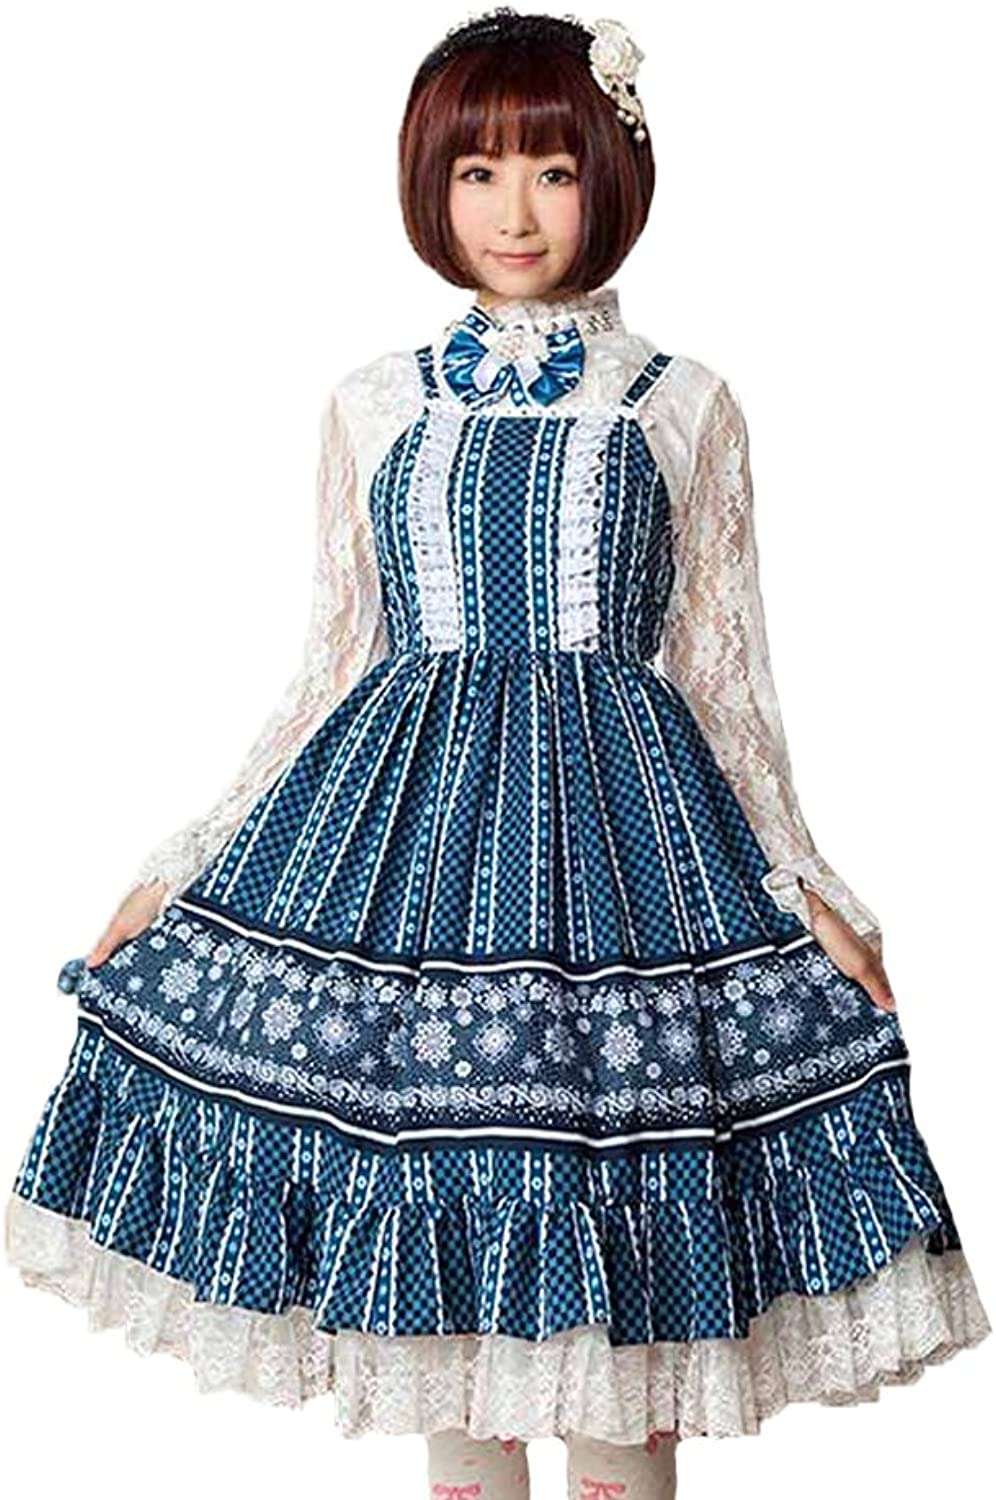 Ainclu Women's Royal bluee Polyester Gemstone Snowflakes Adorable Sweet Princess Lolita Dress